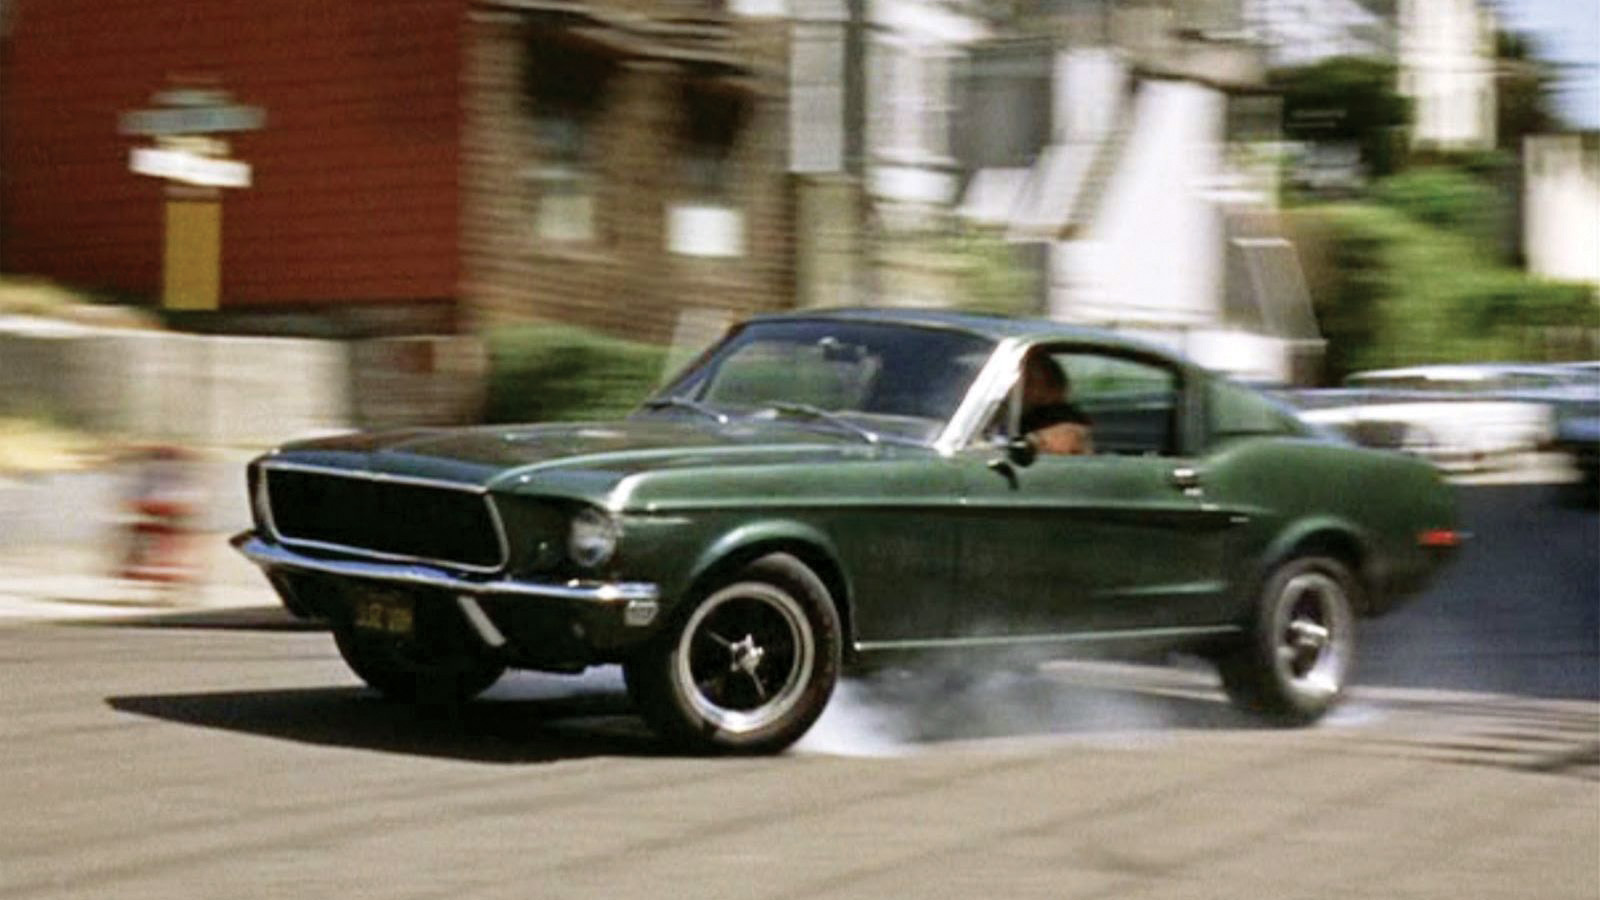 Bullitt chase sequence: The Mustang, its front end plowing, overshoots a turn, one of many cues that the action was real.